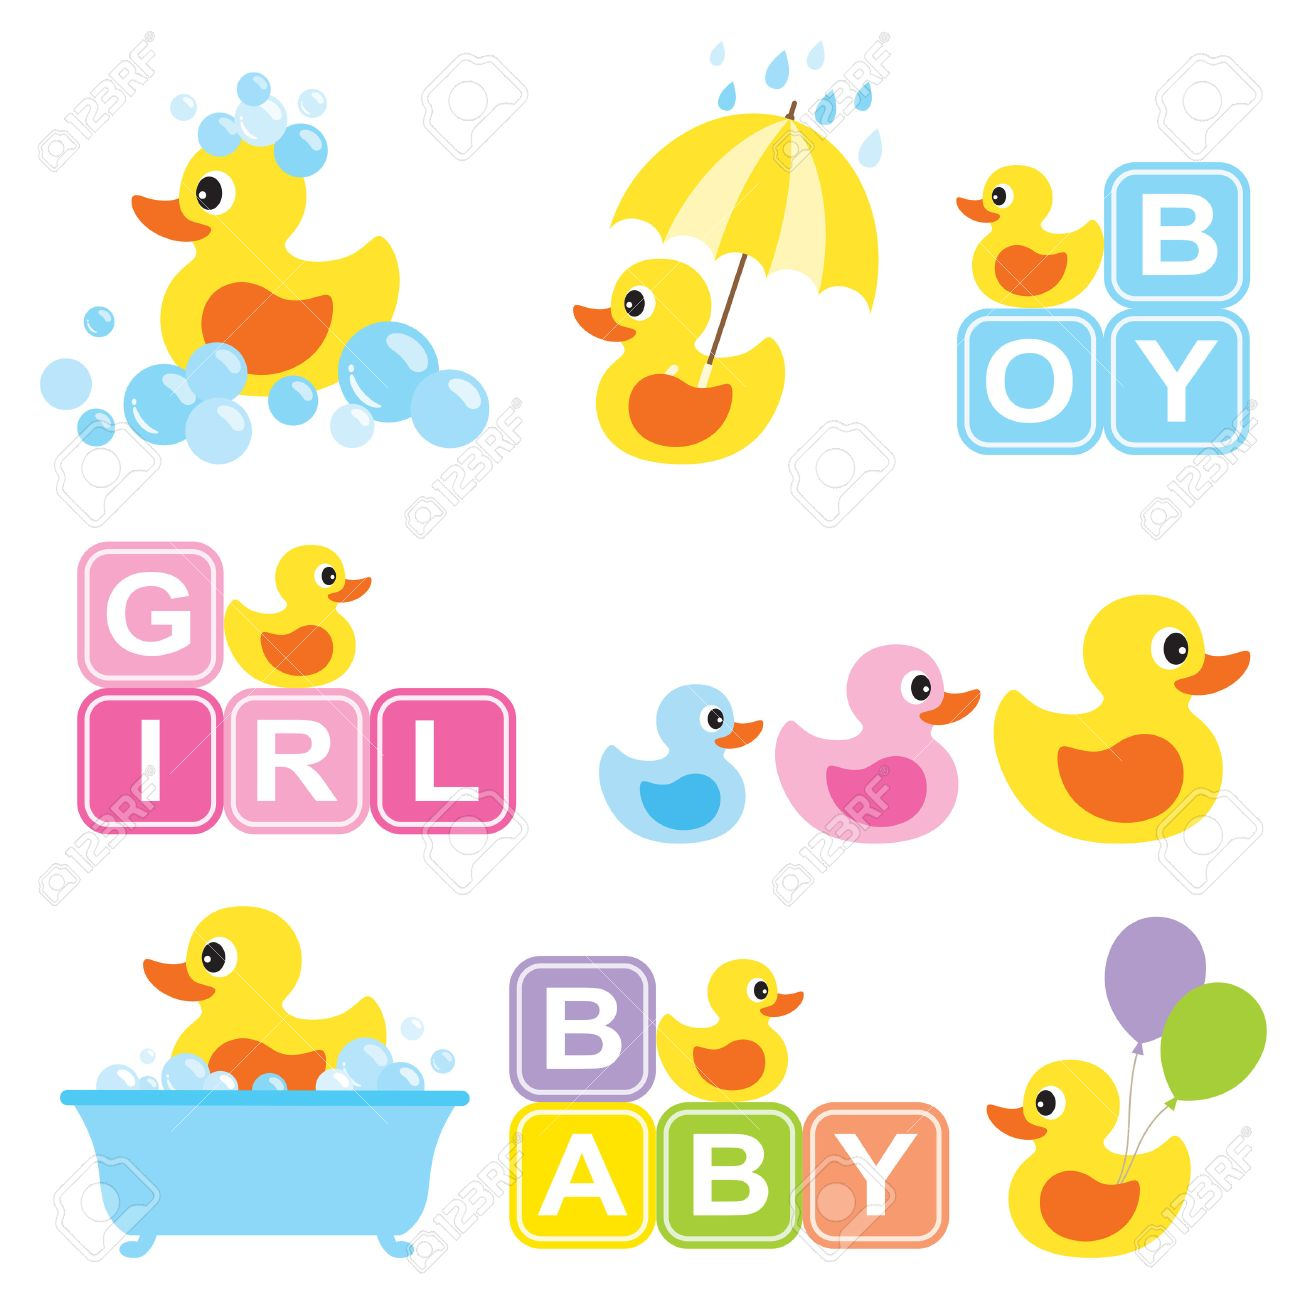 Vector Illustration Of Yellow Rubber Duck For Baby Shower. Royalty ...